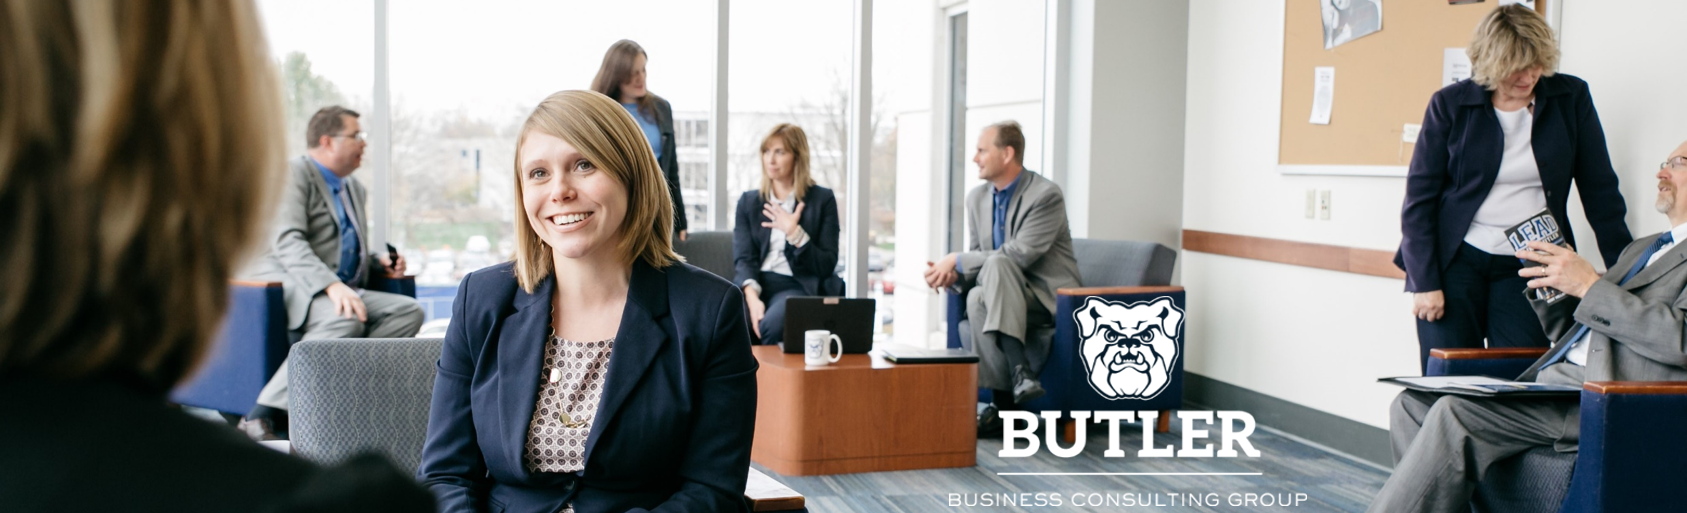 Butler Business Consulting Group